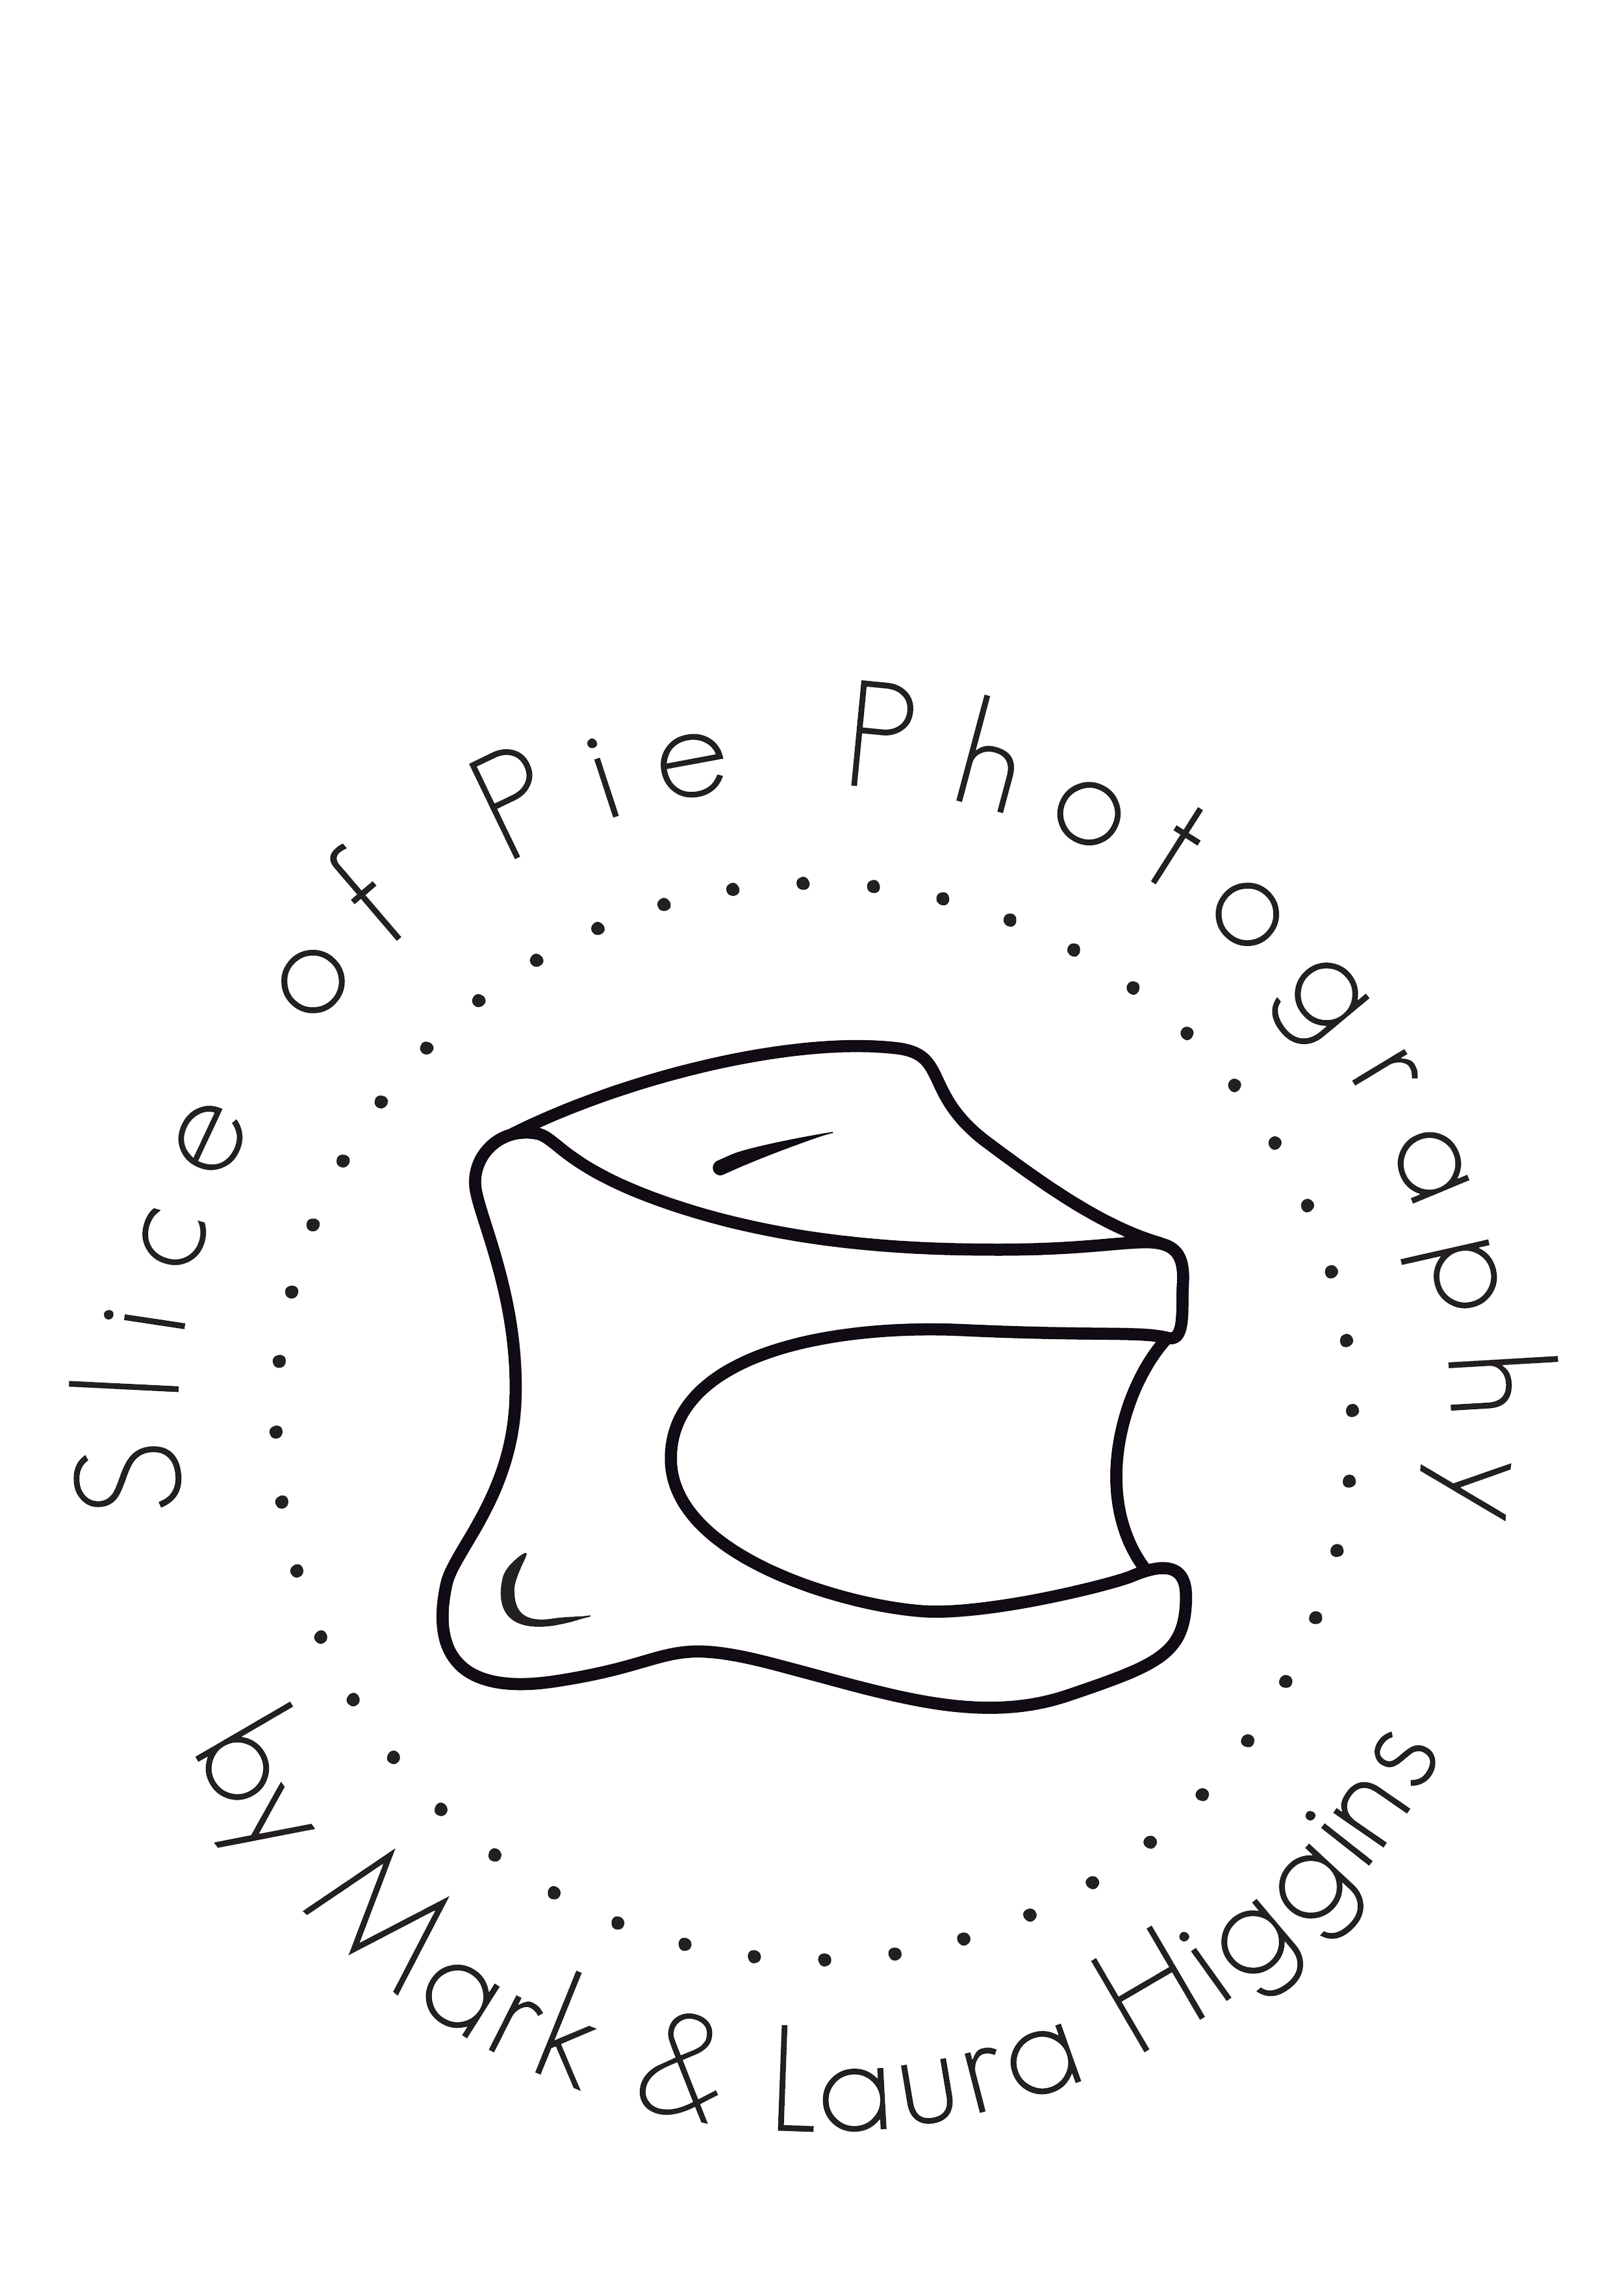 Slice of Pie Photography